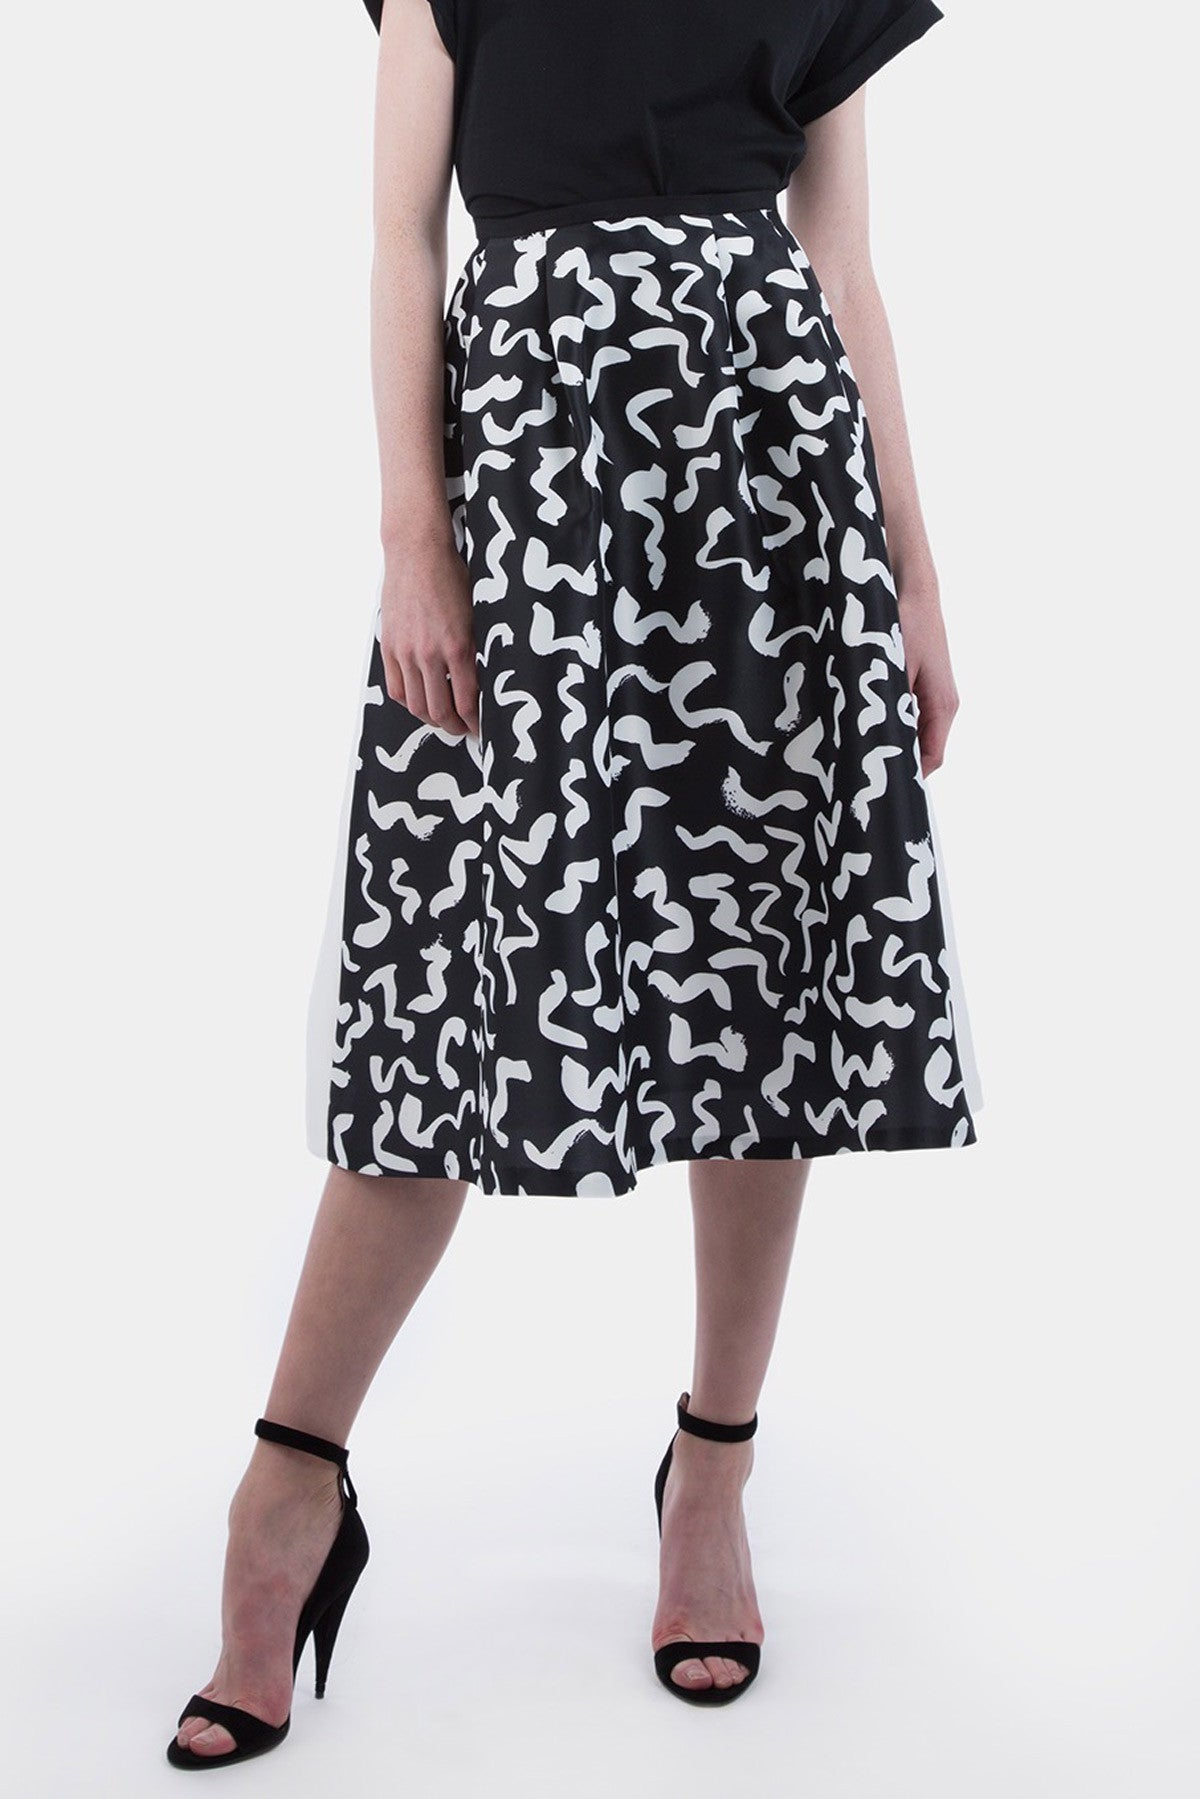 Two Tone Midi Skirt (white print)